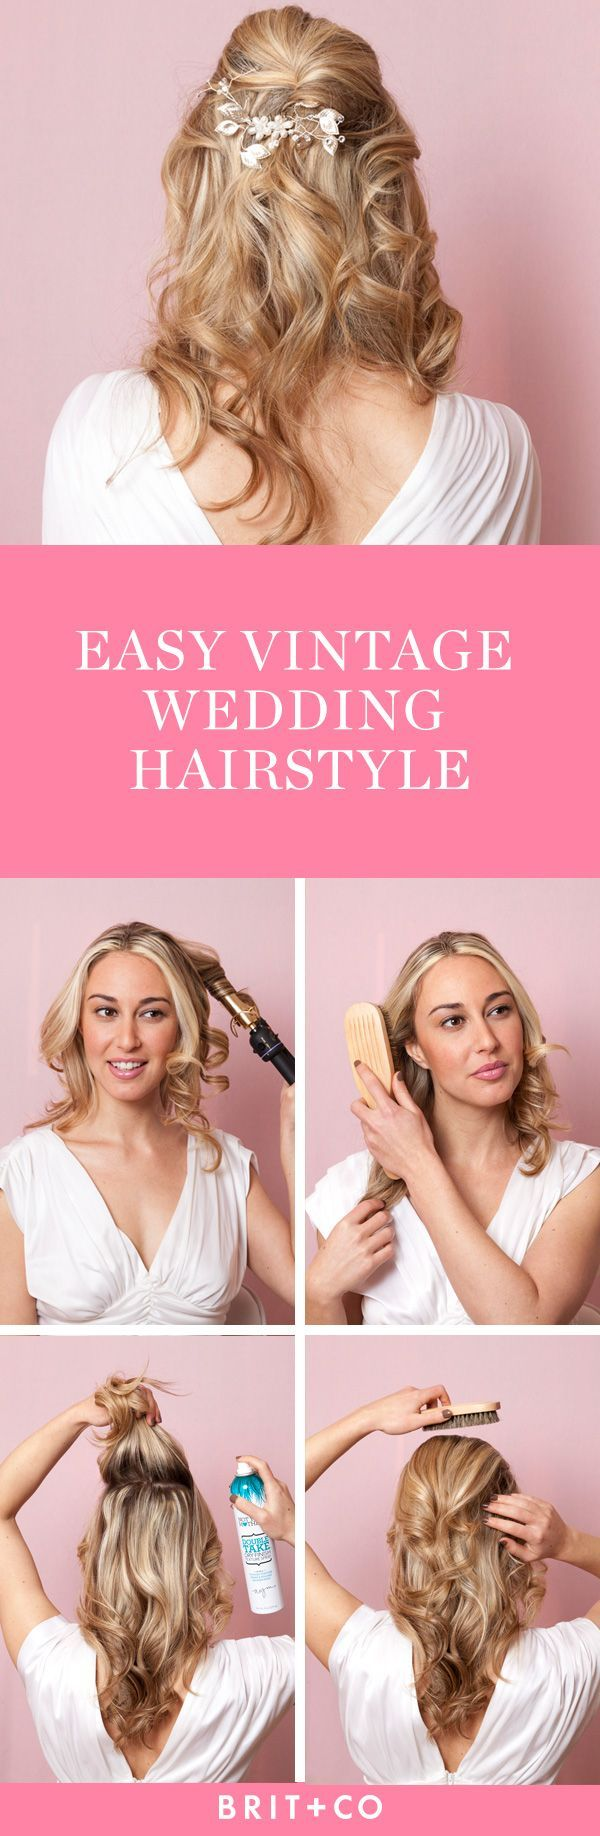 Bookmark this to create a vintage hairstyle for your special day